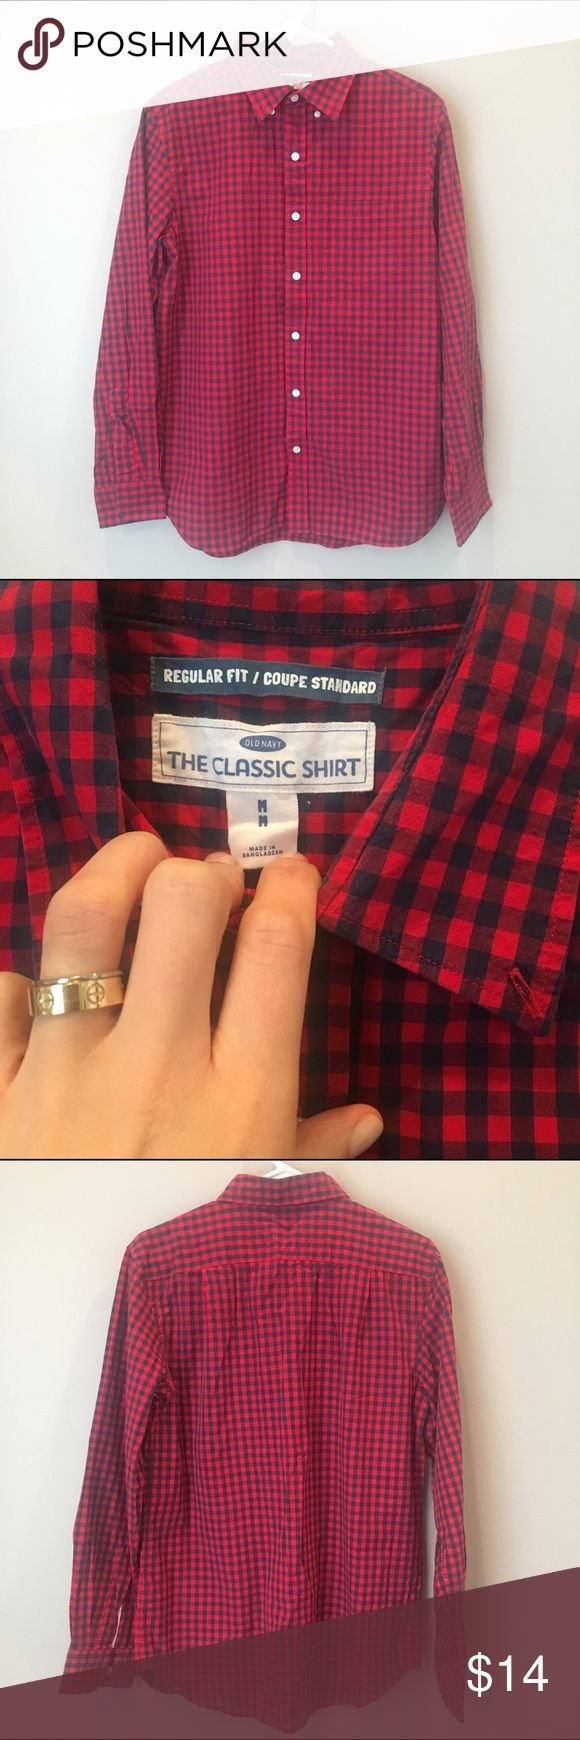 Men's Old Navy Red and Navy Plaid Shirt Old navy men's red and navy button up shirt. 100% cotton. Size medium, excellent condition! Old Navy Shirts Casual Button Down Shirts